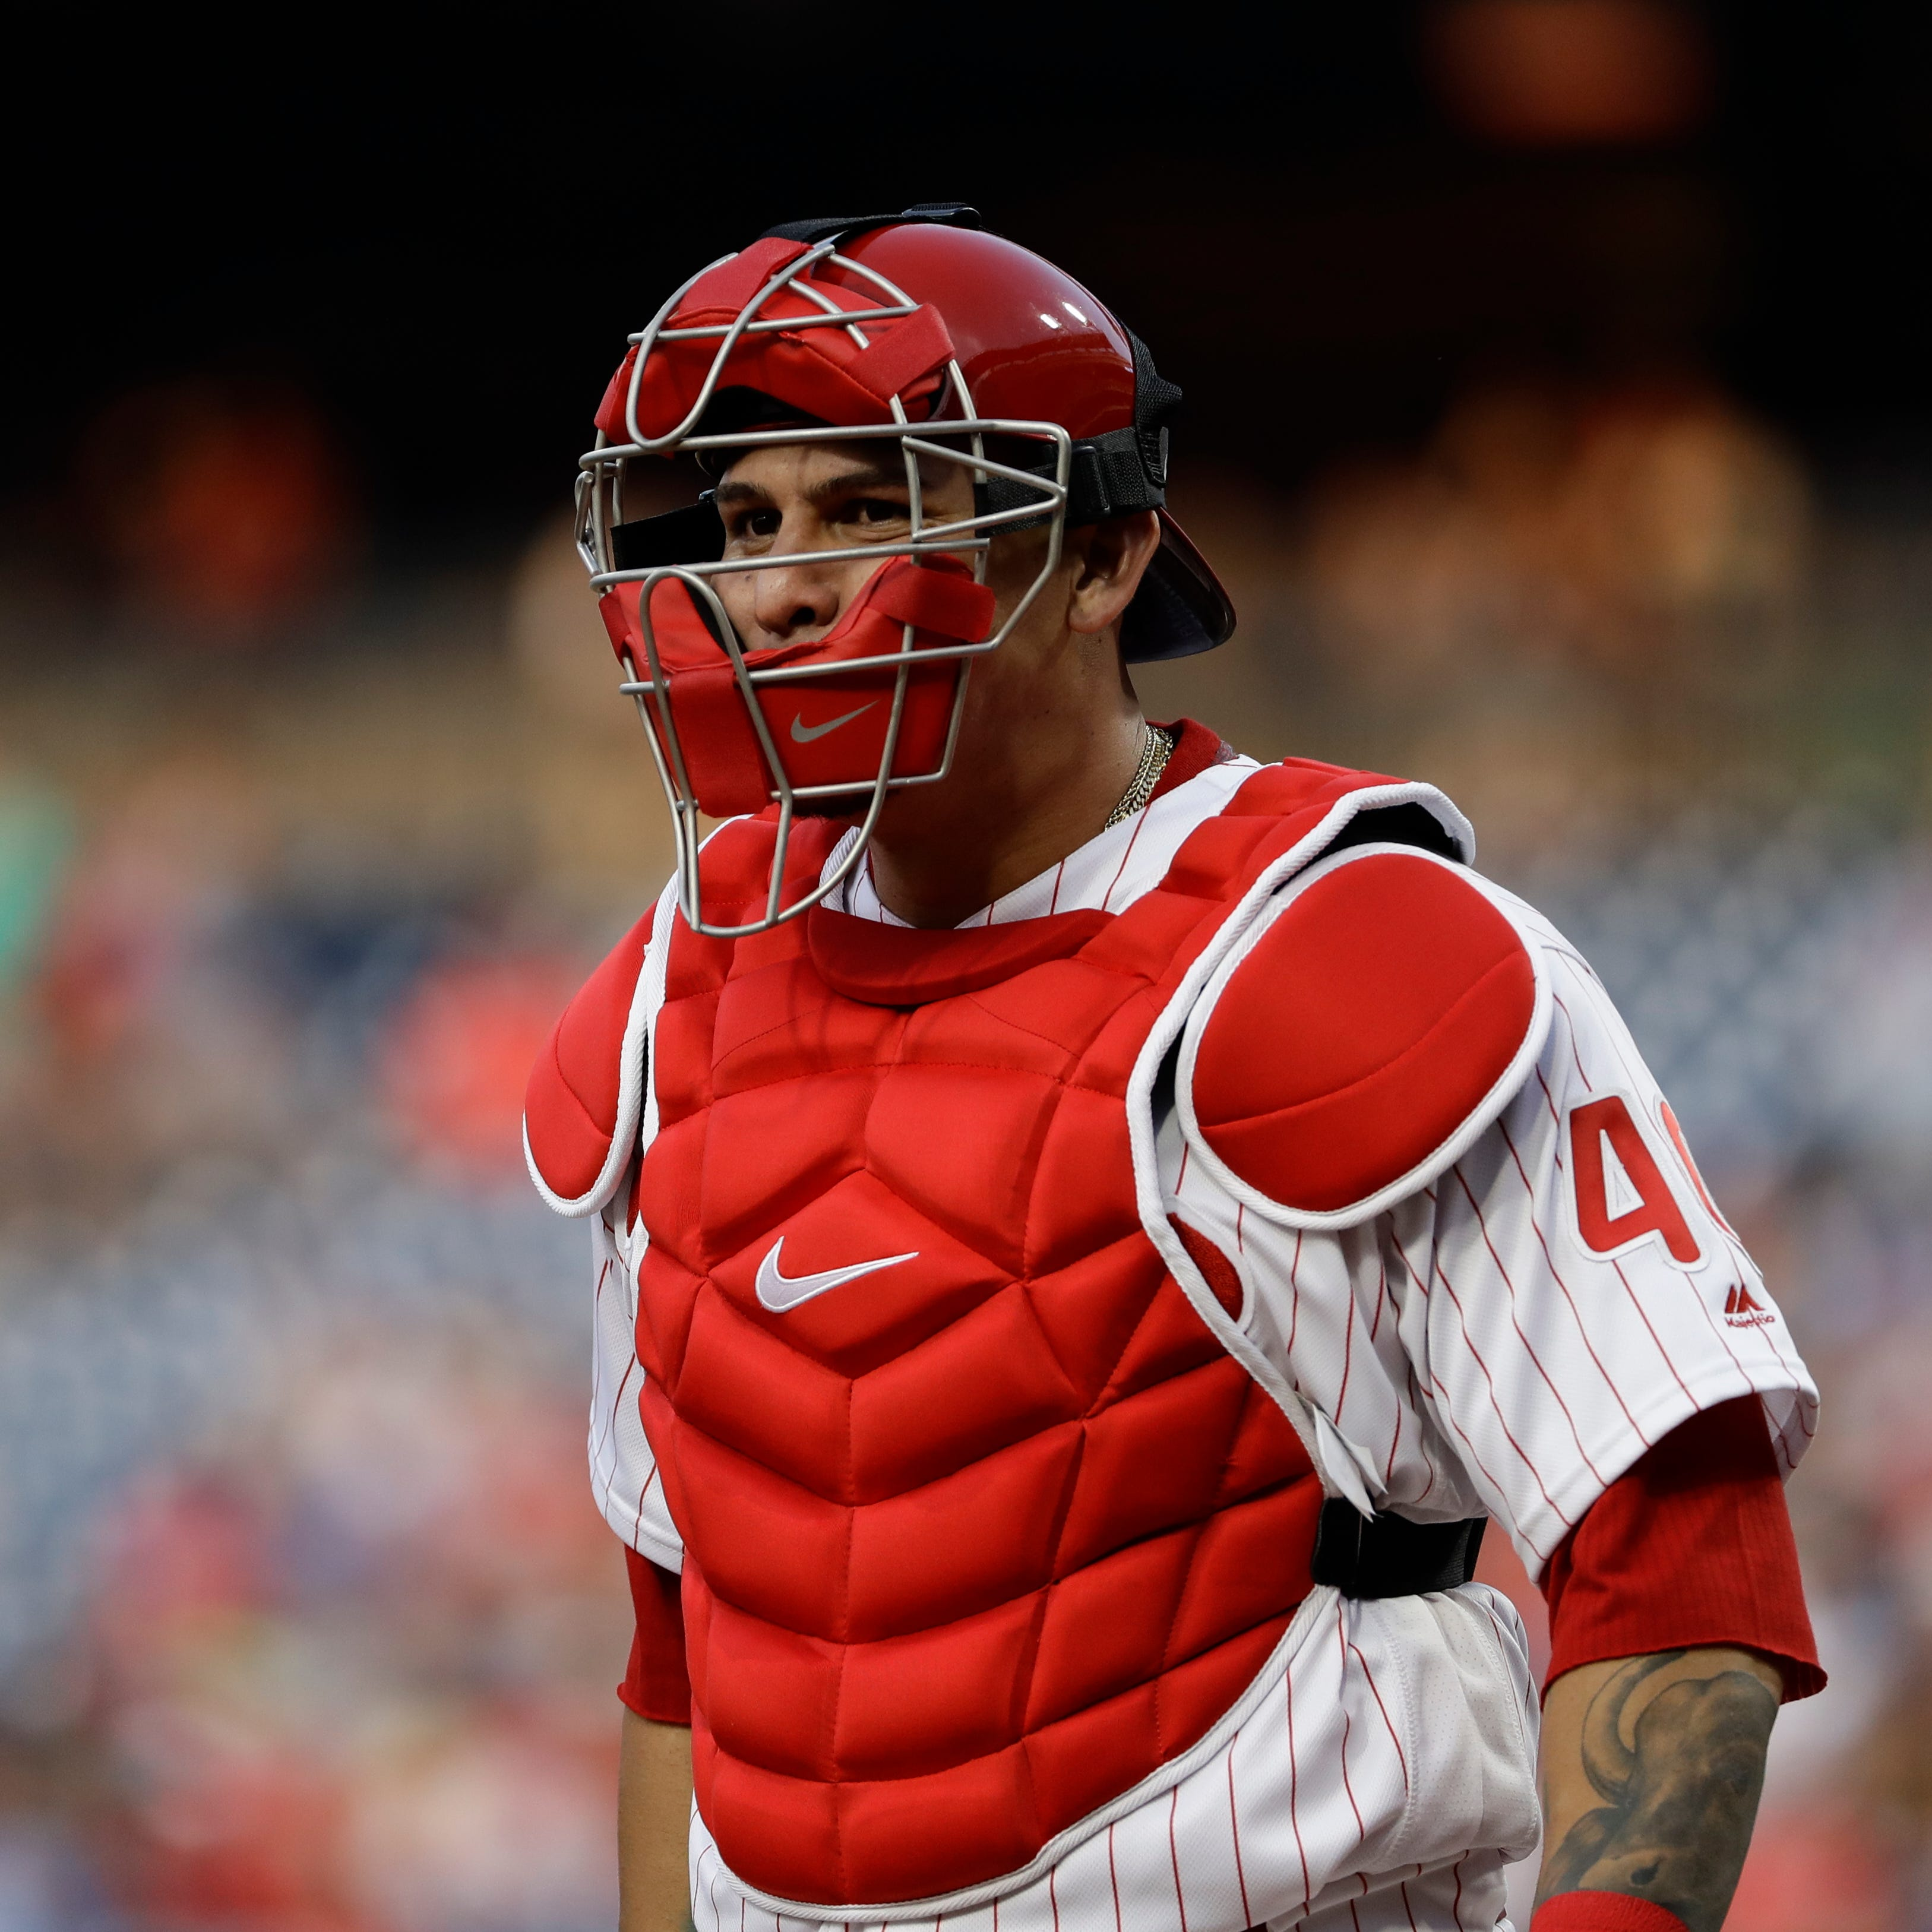 Brewers reportedly have meeting with free-agent catcher Wilson Ramos at winter meetings